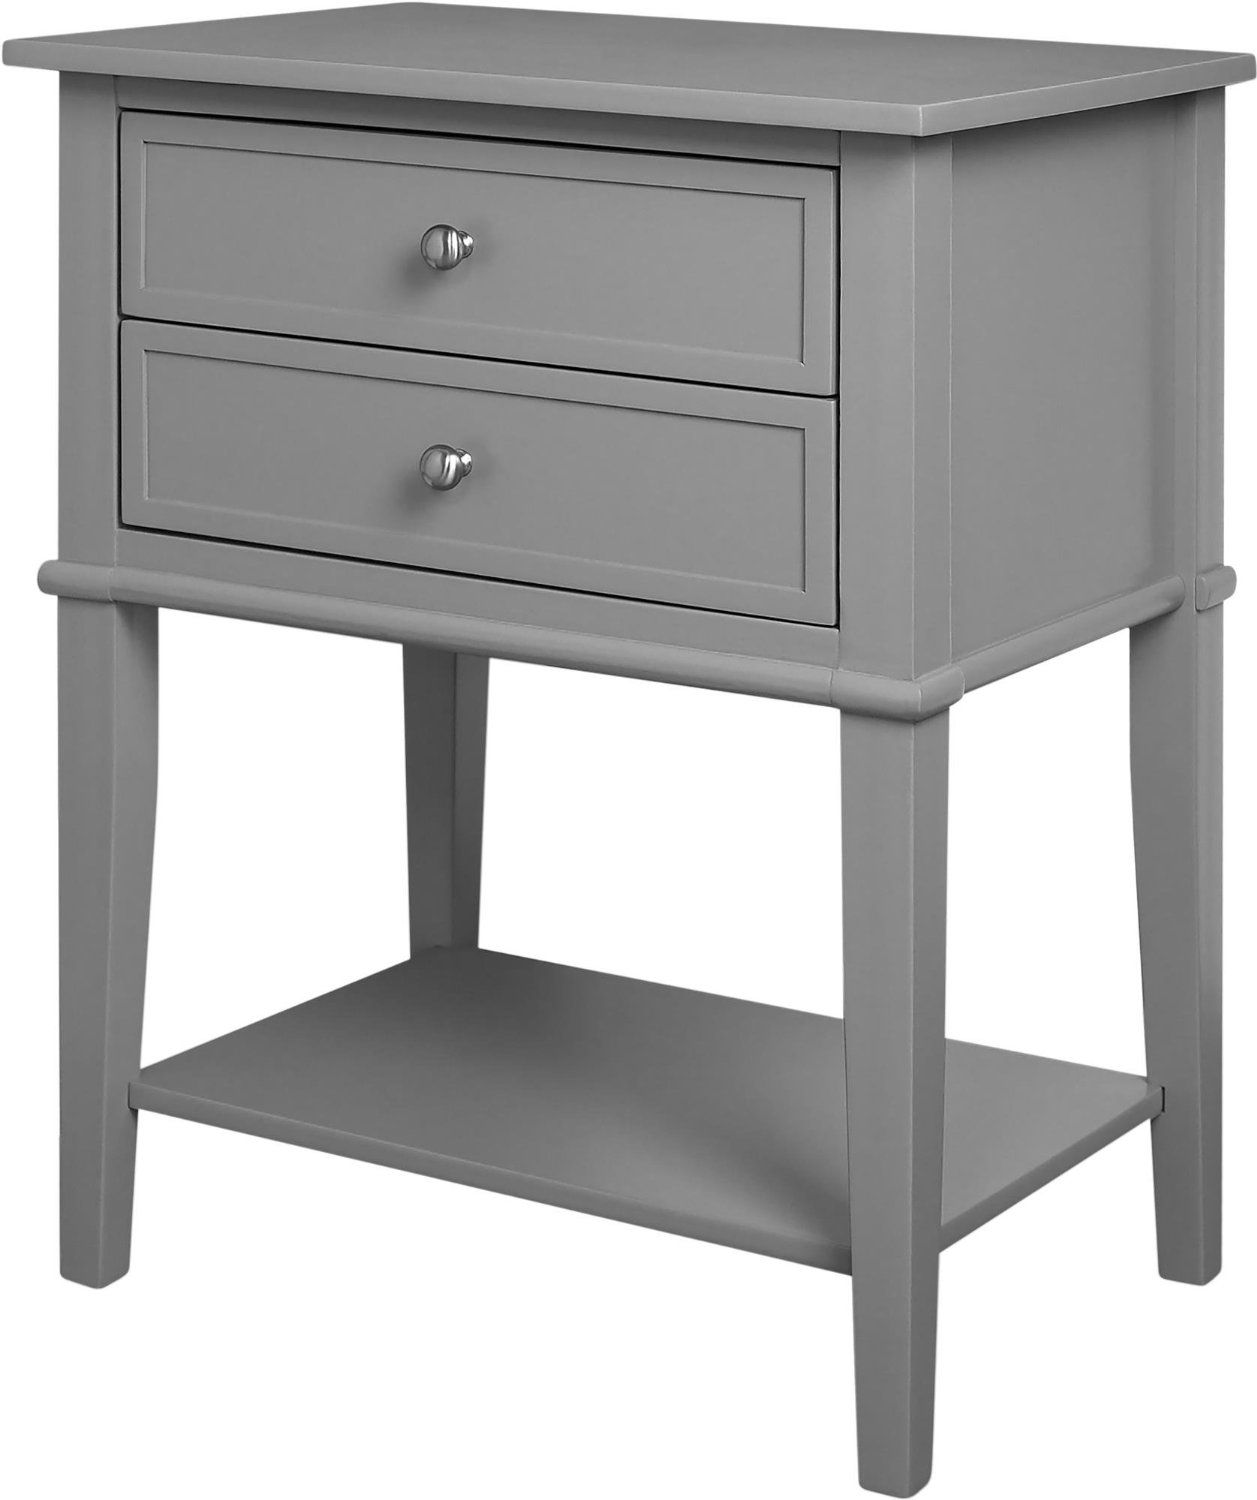 tables small beautiful accent drawer astonishing drawers with table black house decorations